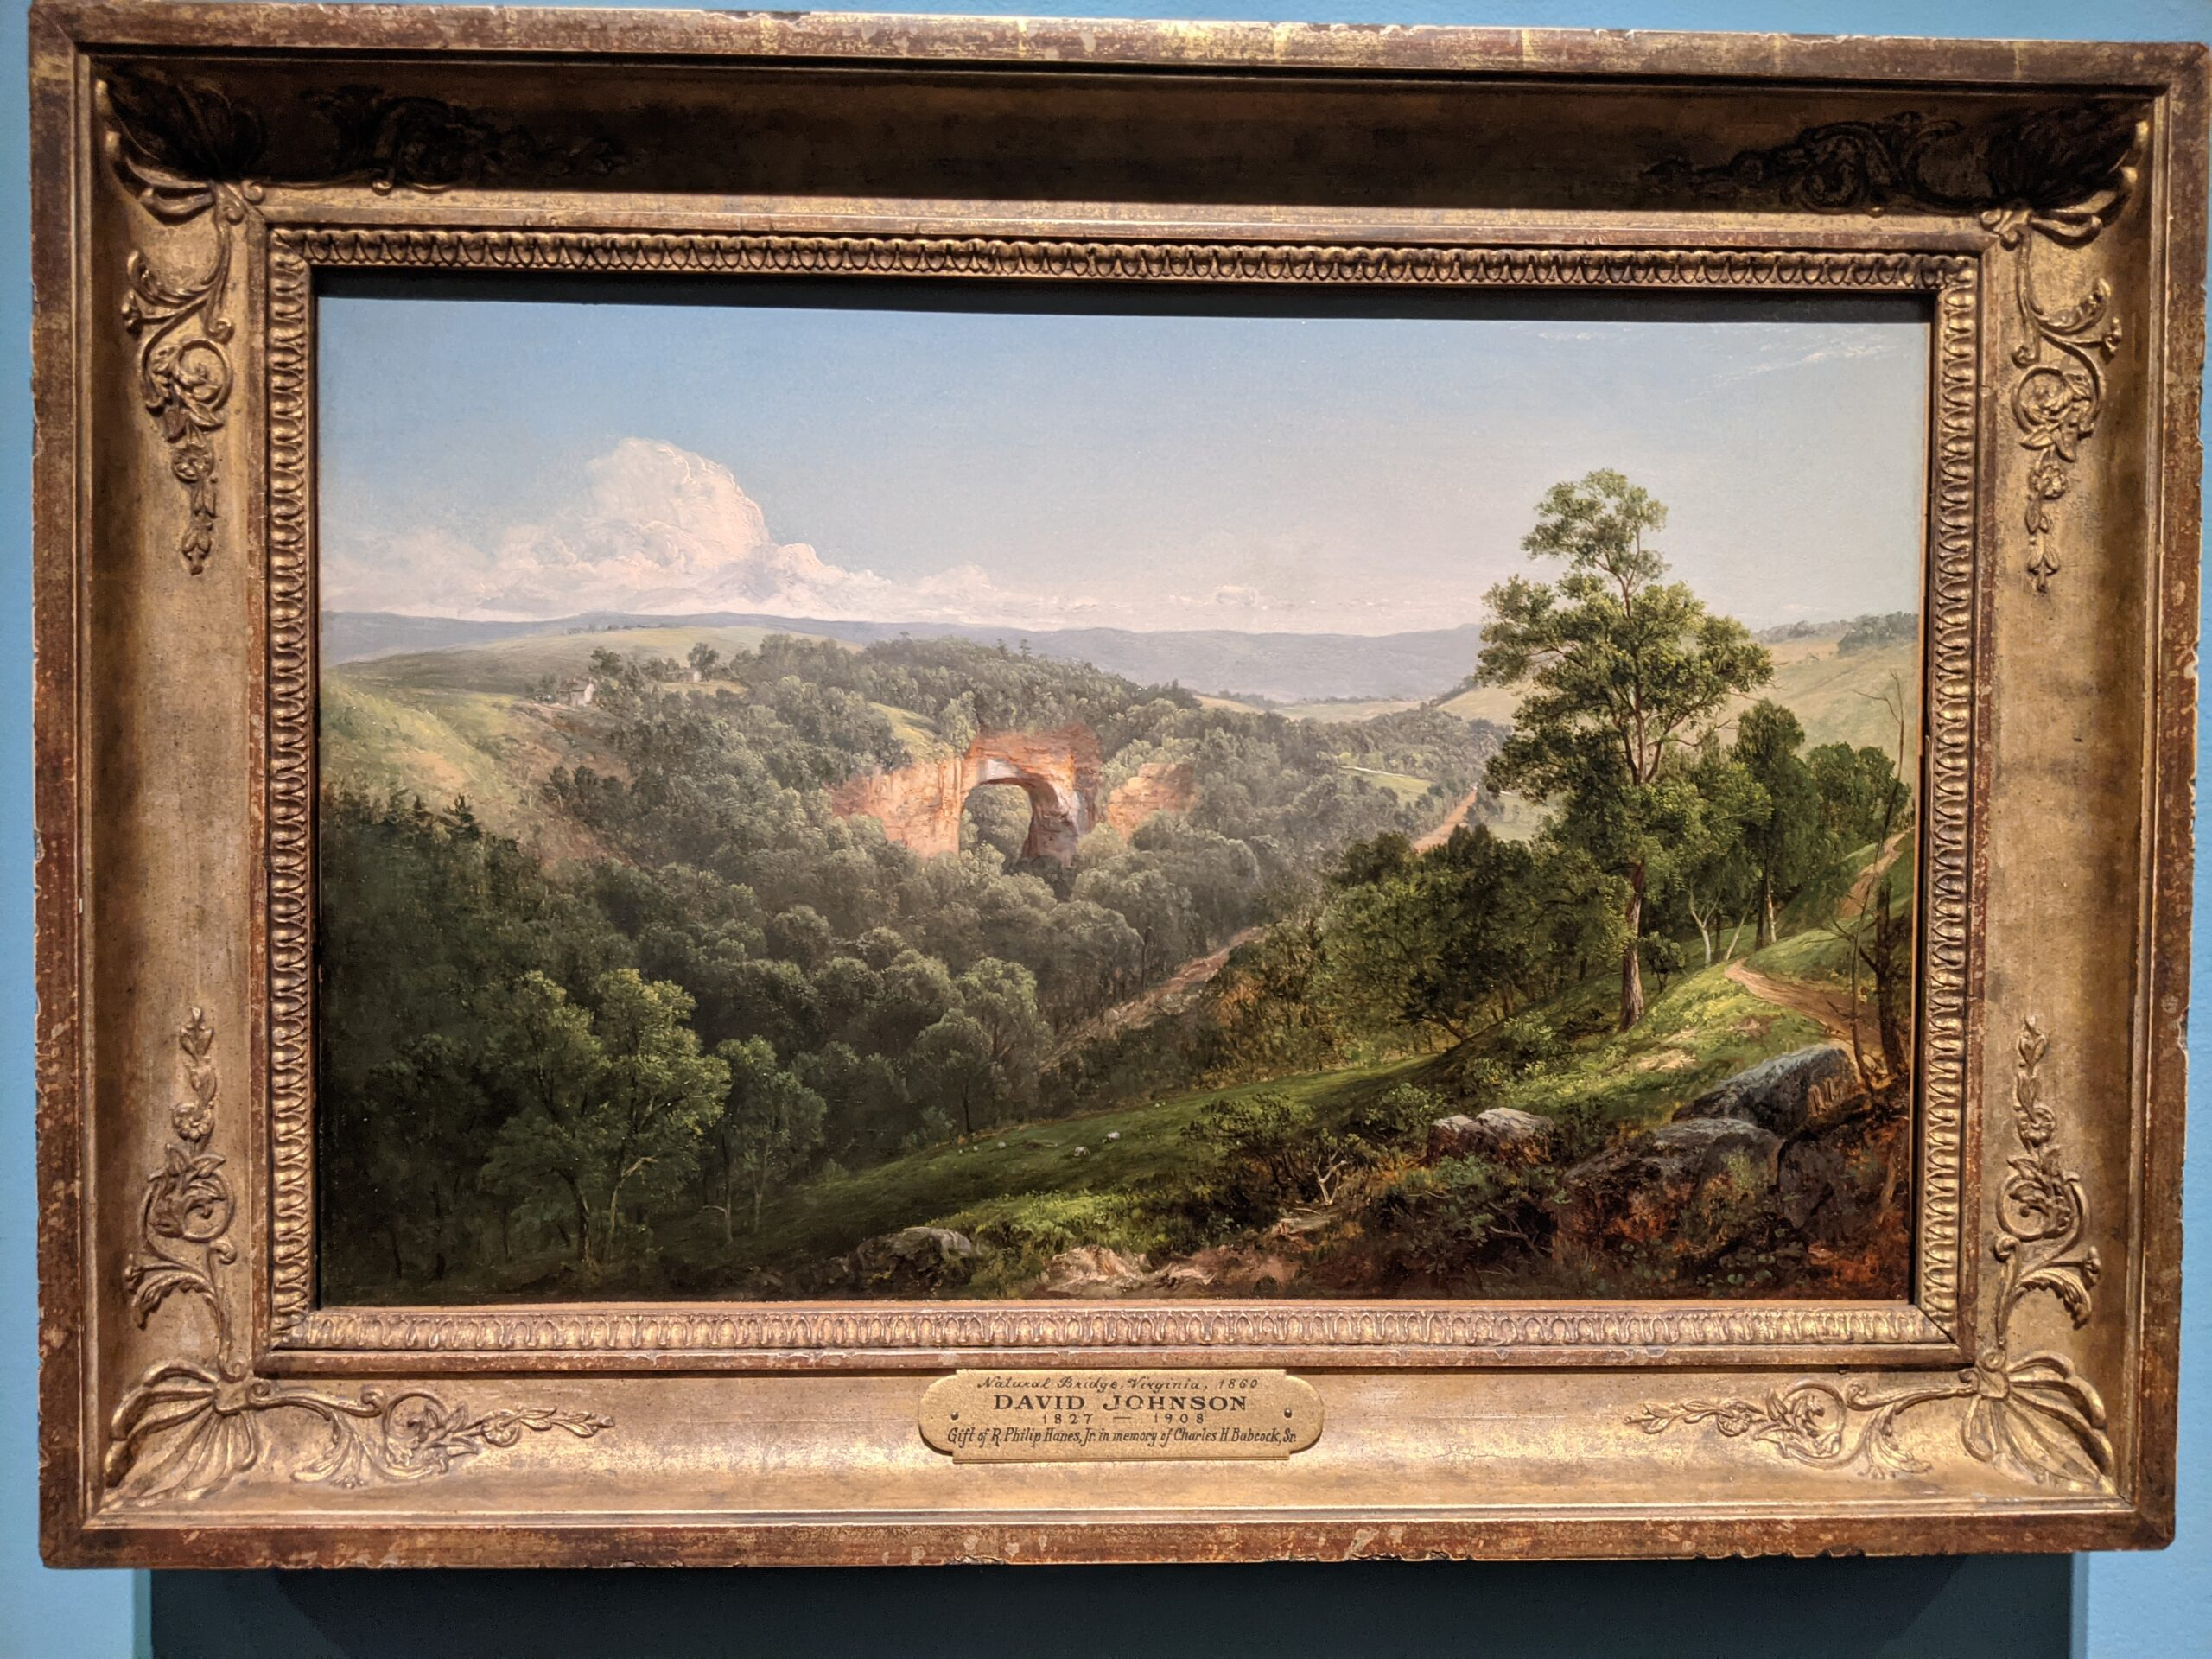 Virginia Arcadia: The VMFA exhibits visual paeans dedicated to an ancient beauty